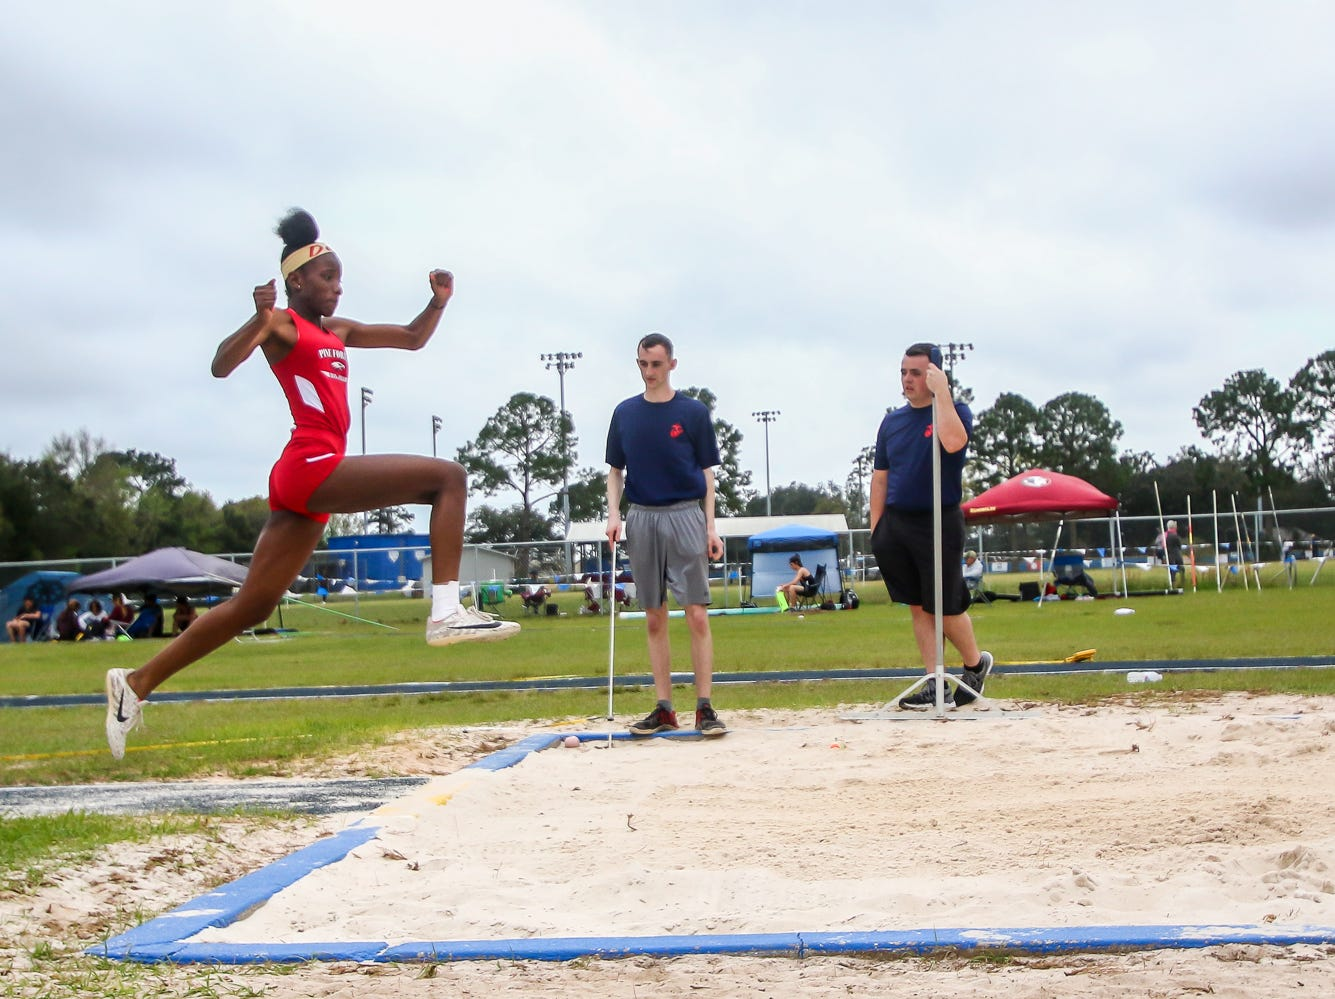 Pine Forest's Za'isha Fraser competes in the triple jump on Saturday, March 9, 2019, during the Aggie Invitational at Washington High School.